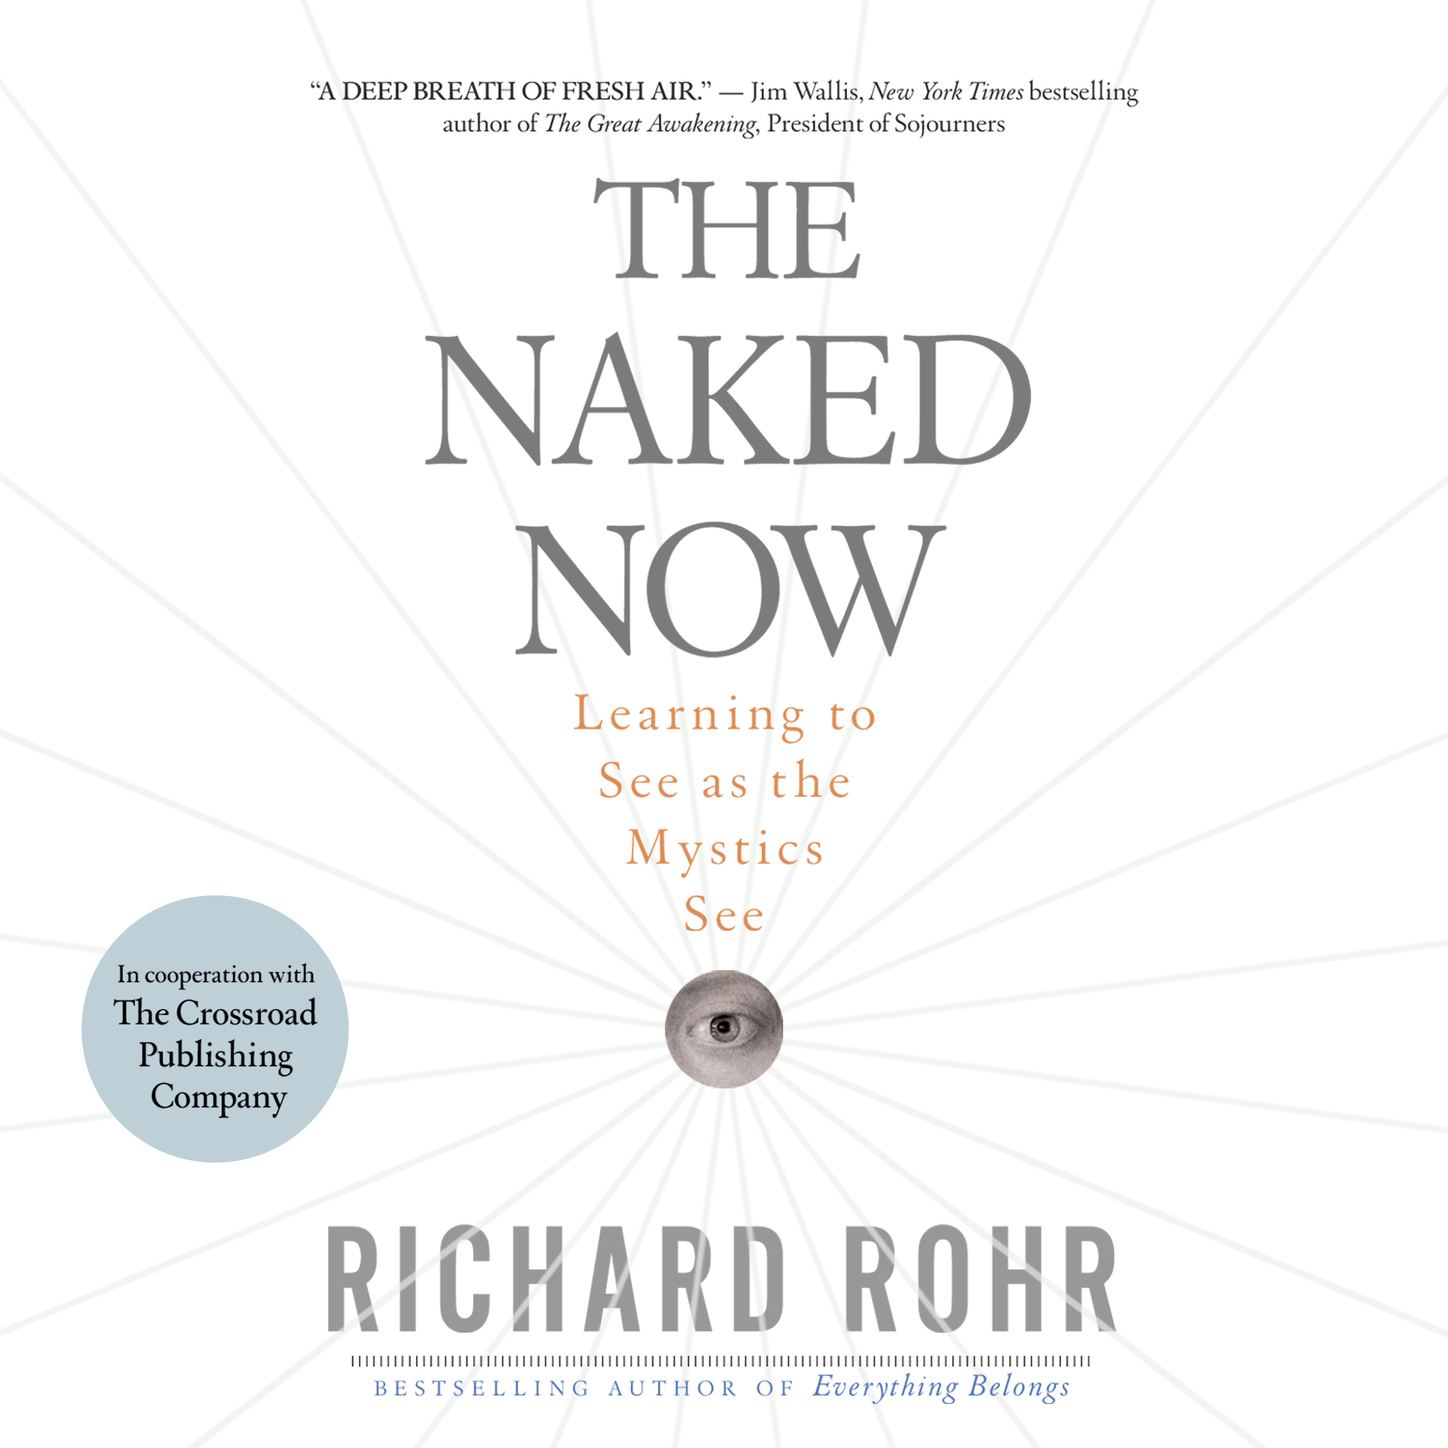 цена на Richard Rohr The Naked Now - Learning To See As the Mystics See (Unabridged)